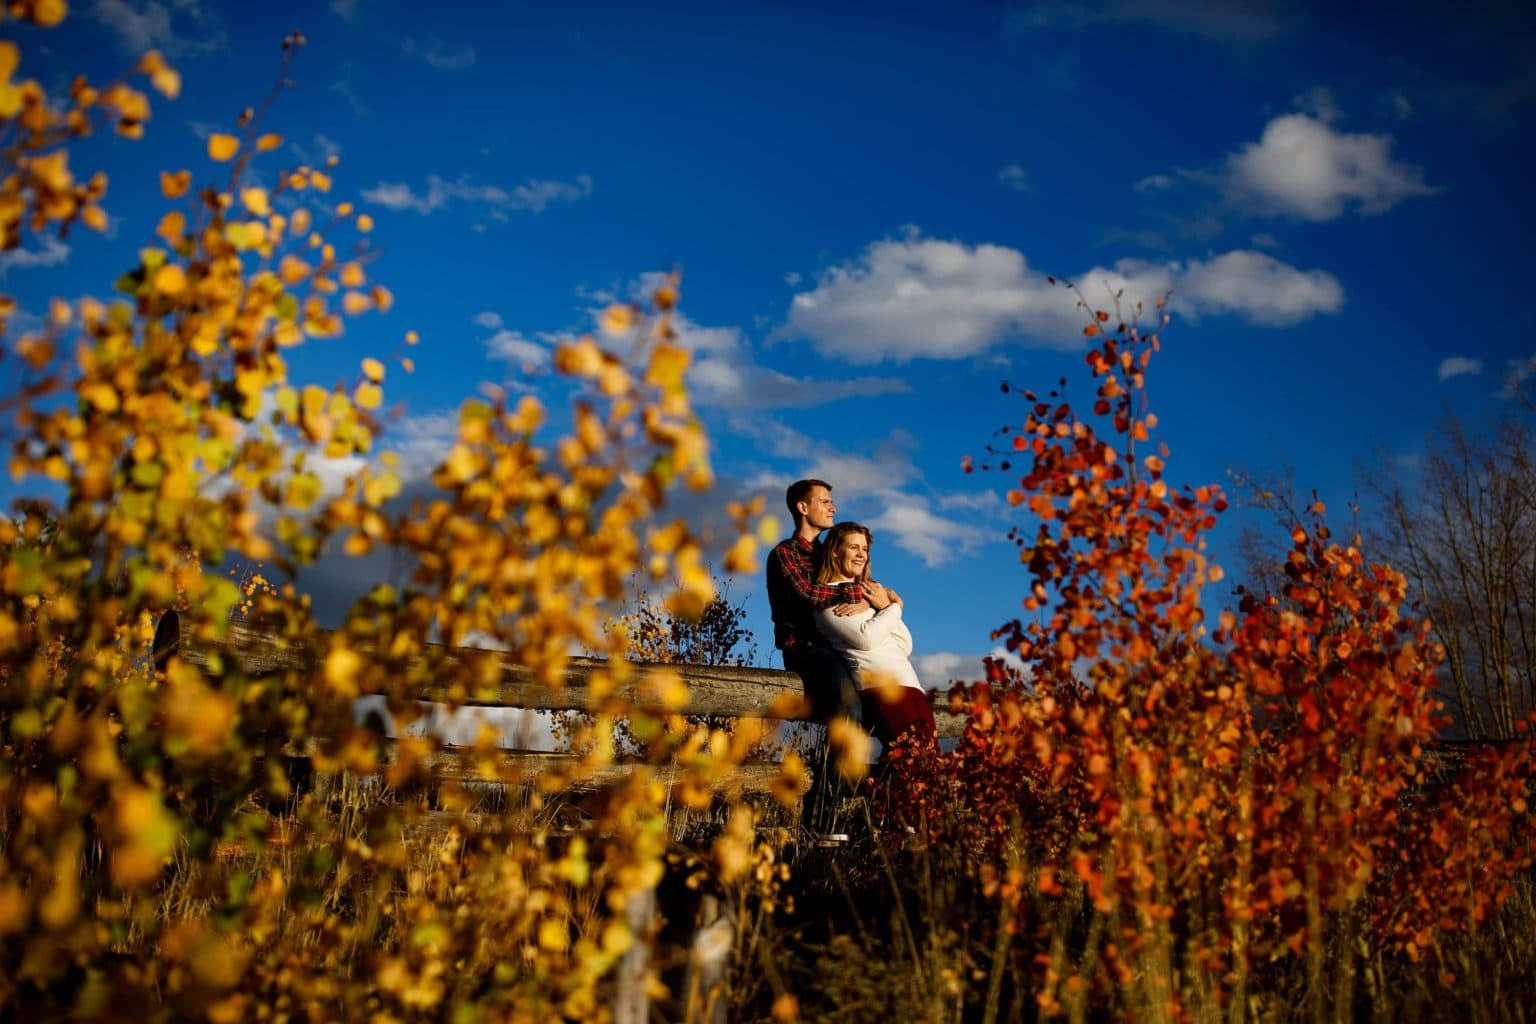 When To Take Engagement Photos